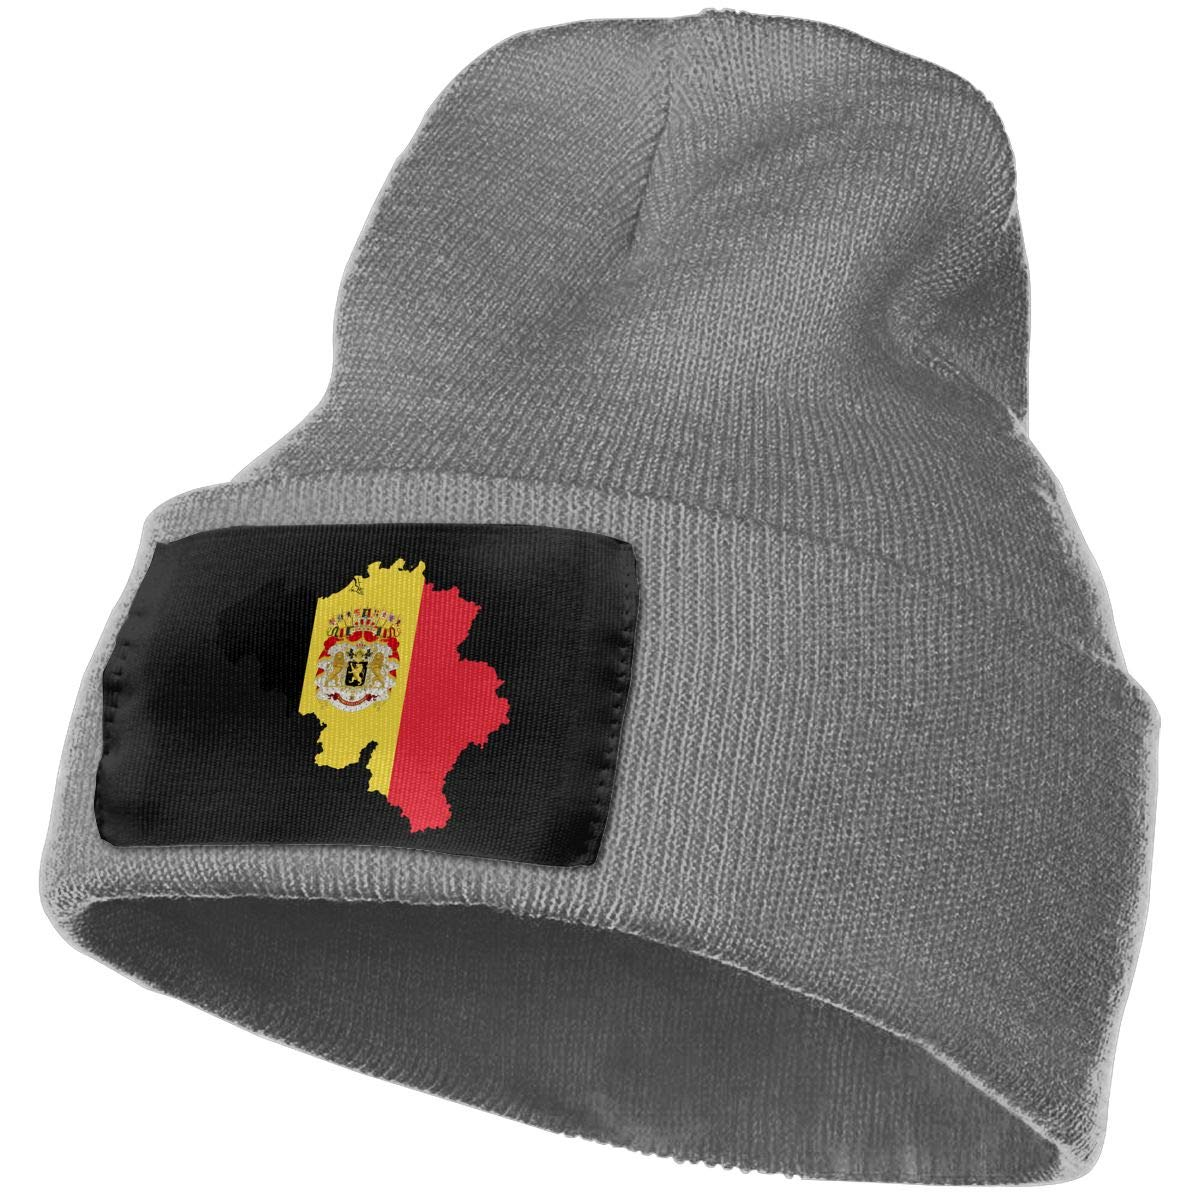 SLADDD1 Belgium Warm Winter Hat Knit Beanie Skull Cap Cuff Beanie Hat Winter Hats for Men /& Women